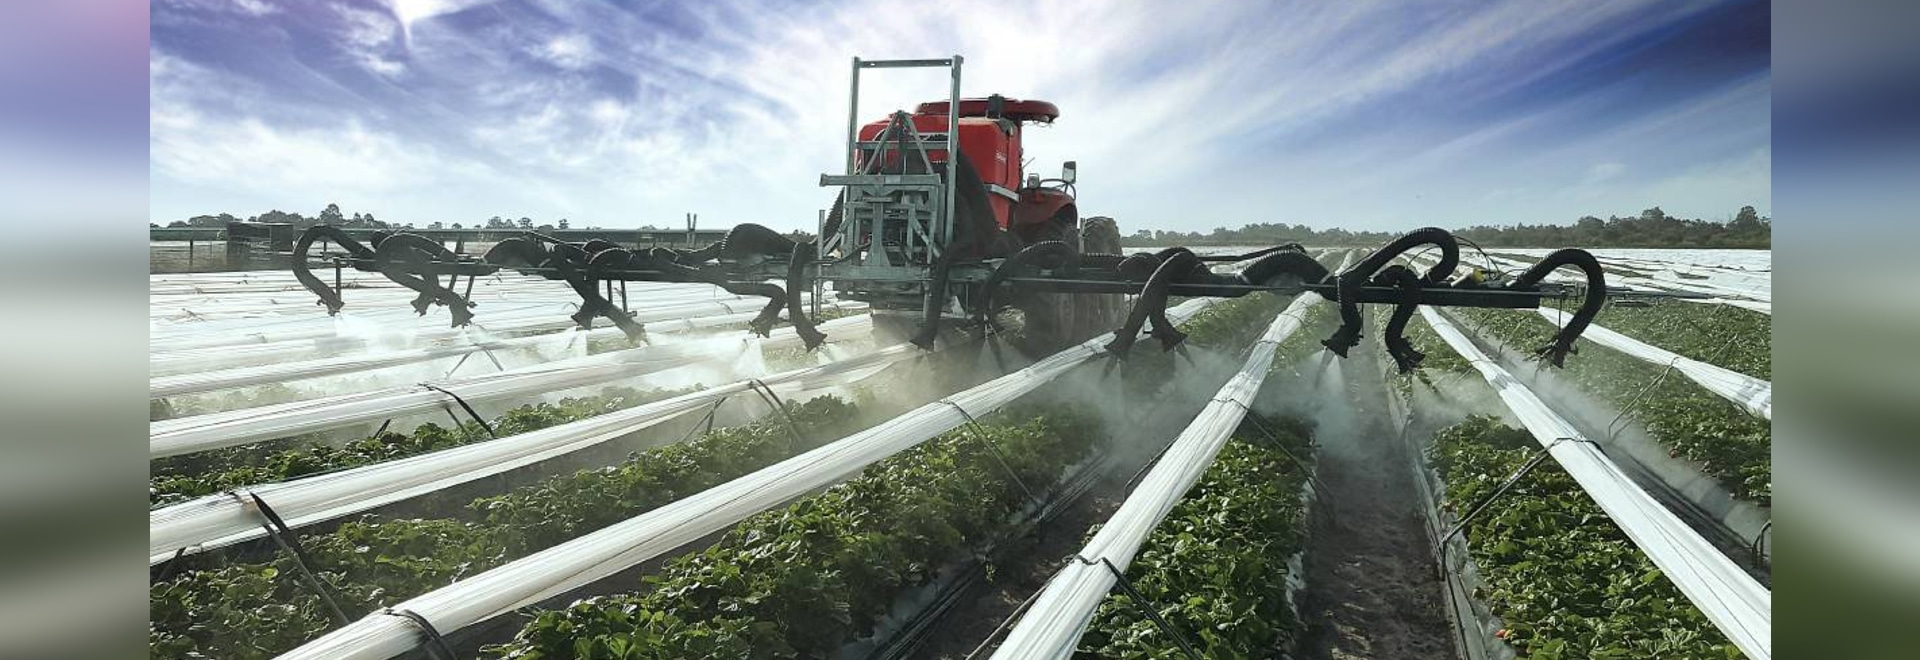 Western Australian strawberry producer, T&L Produce Marketing, recently utilised Silvan Australia to develop an air-assist spray solution for its 40 hectare farm at Gingin, north of Perth.